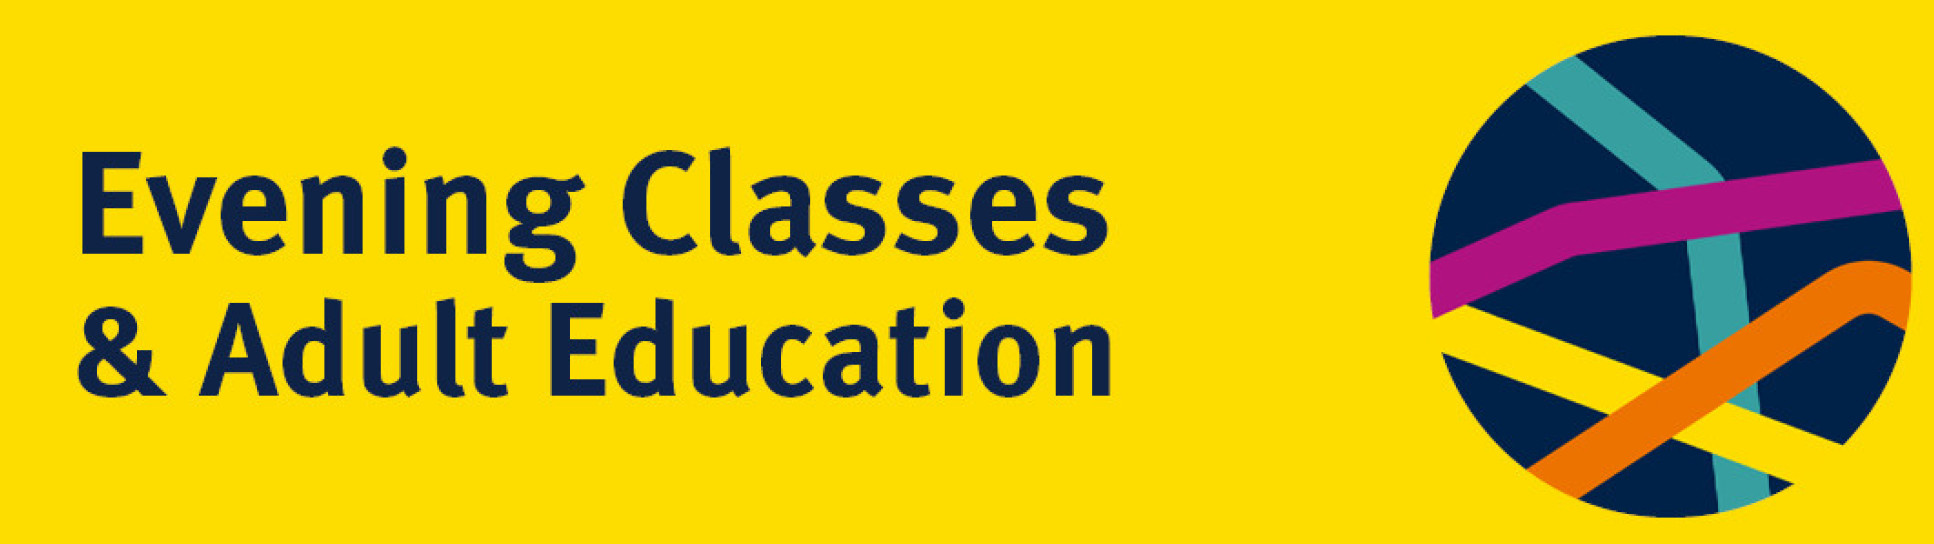 Evening Classes & Adult Education